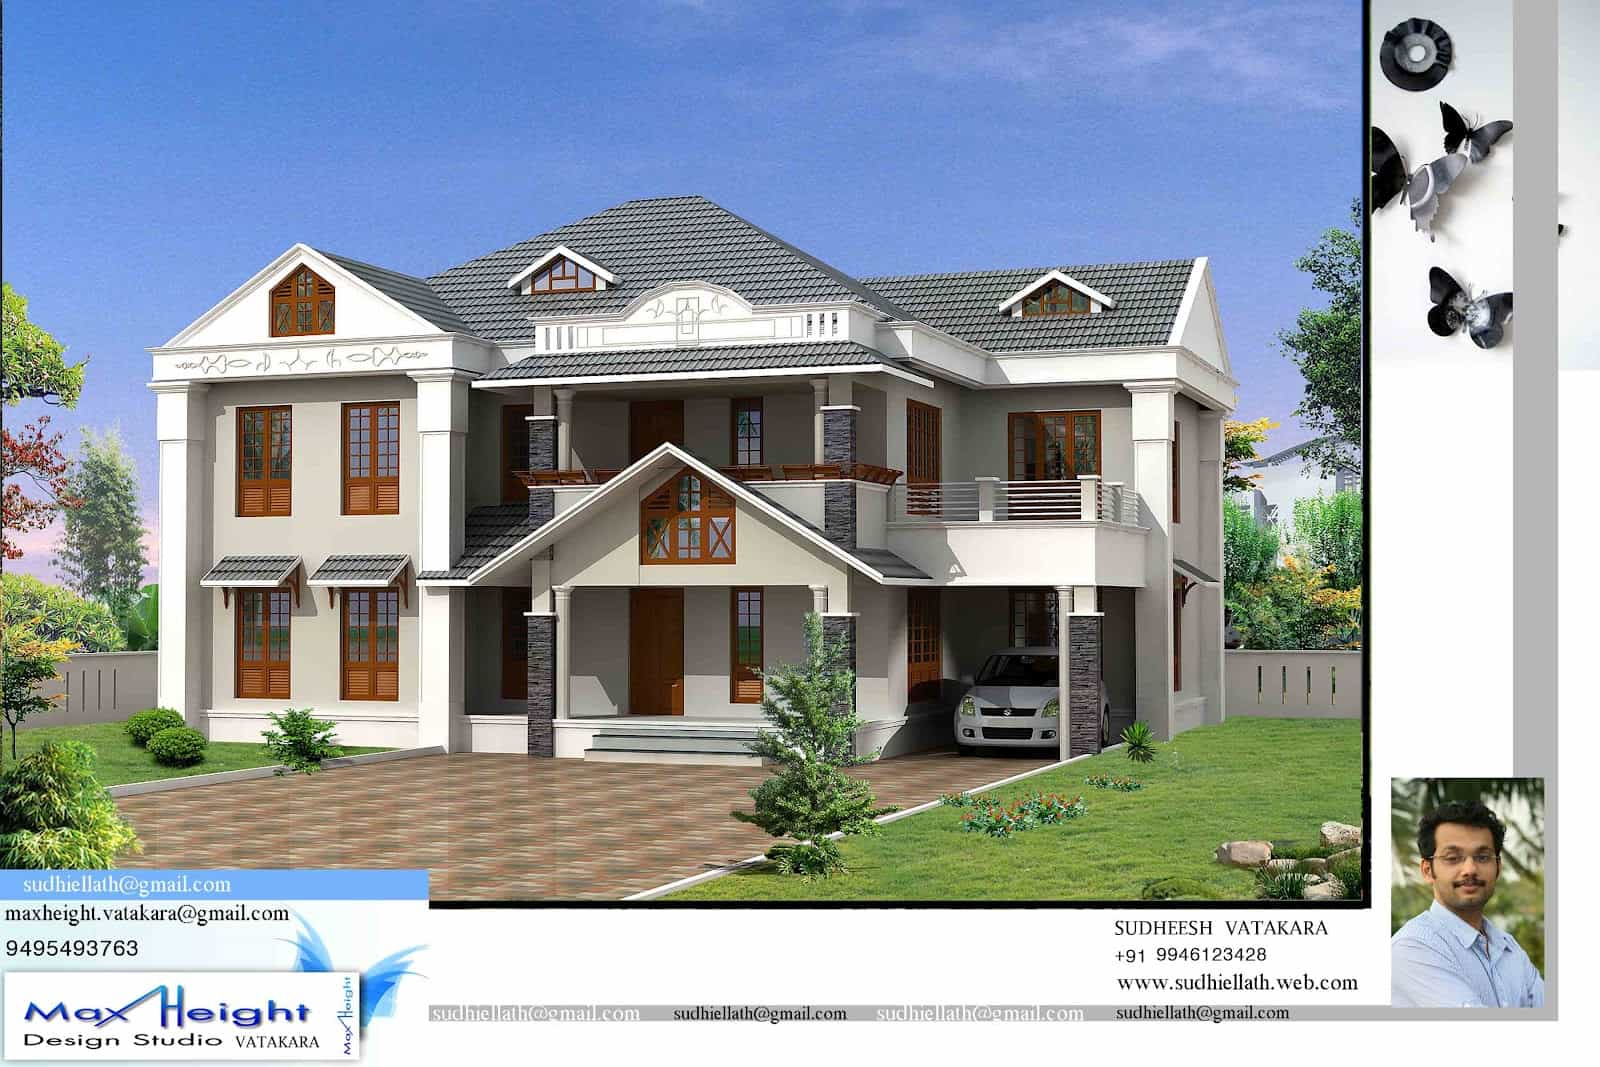 New model houses in kerala photos images for New home designs